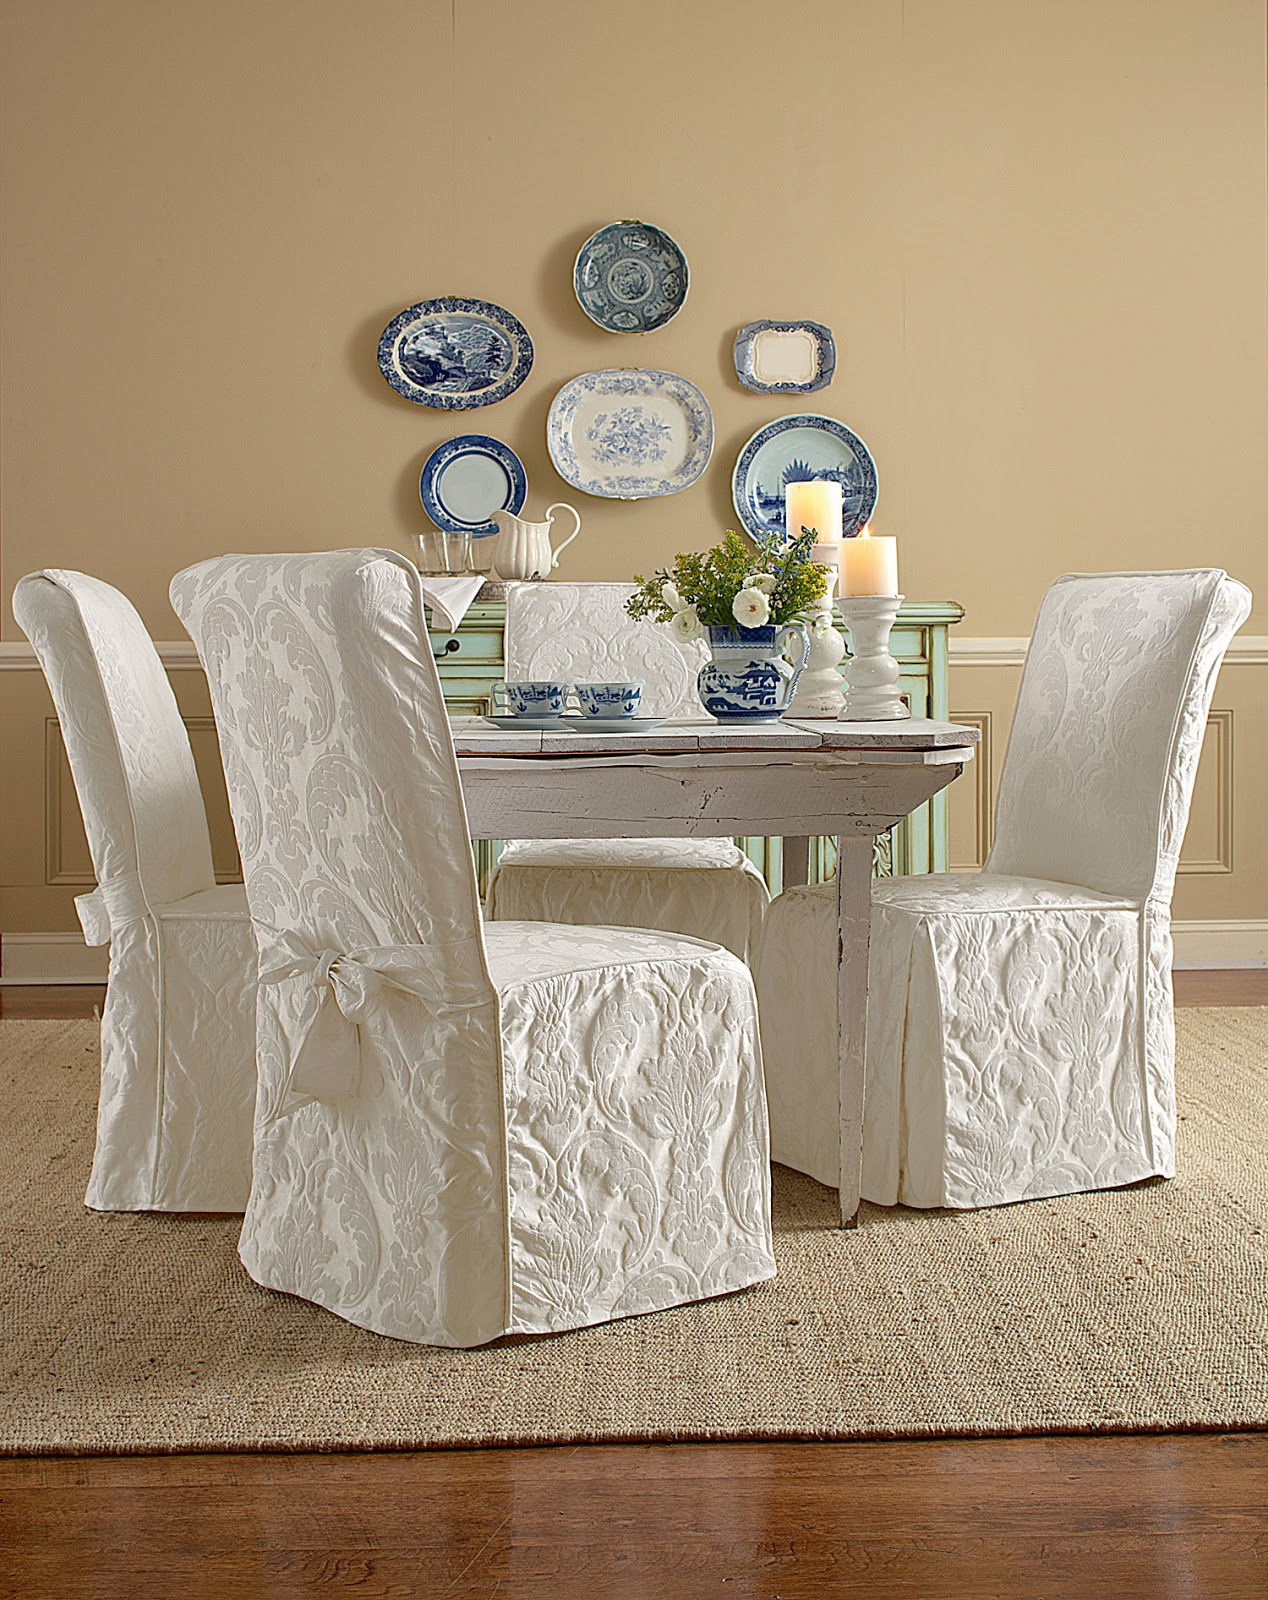 http://www.surefit.net/shop/categories/dining-and-folding-chair-covers-and-accessories-full-length-dining-chairs/matelasse-damask-long-dining-chair-cover.cfm?sku=39954&stc=0526100001